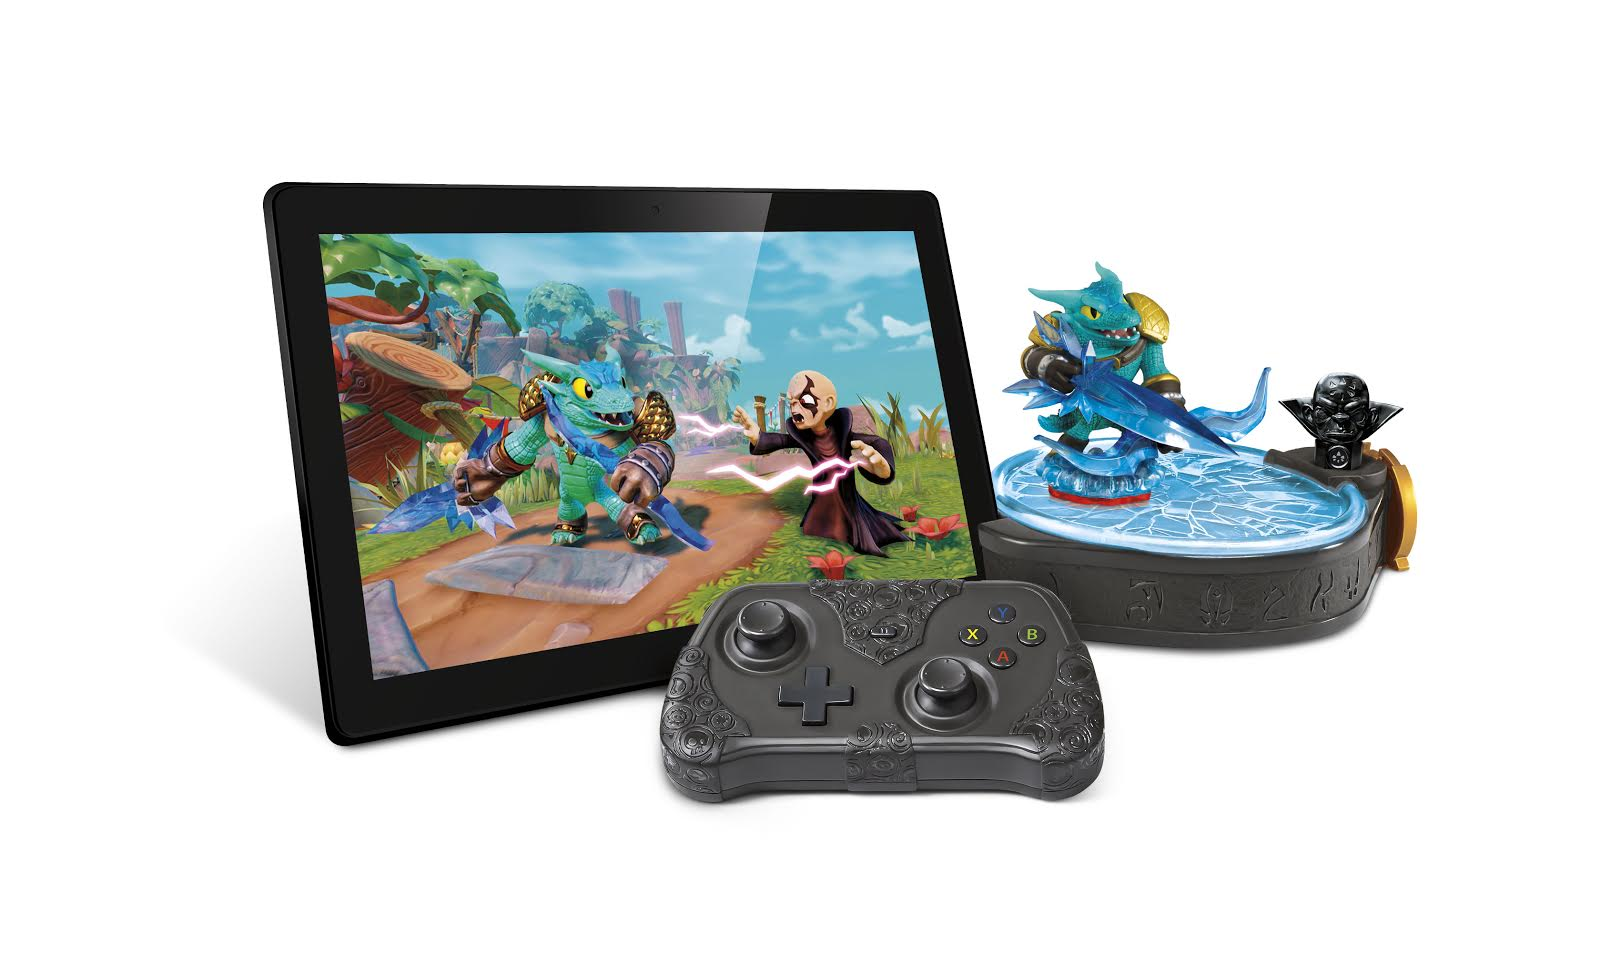 Skylanders Trap Team is coming to iOS, Android, and Kindle!